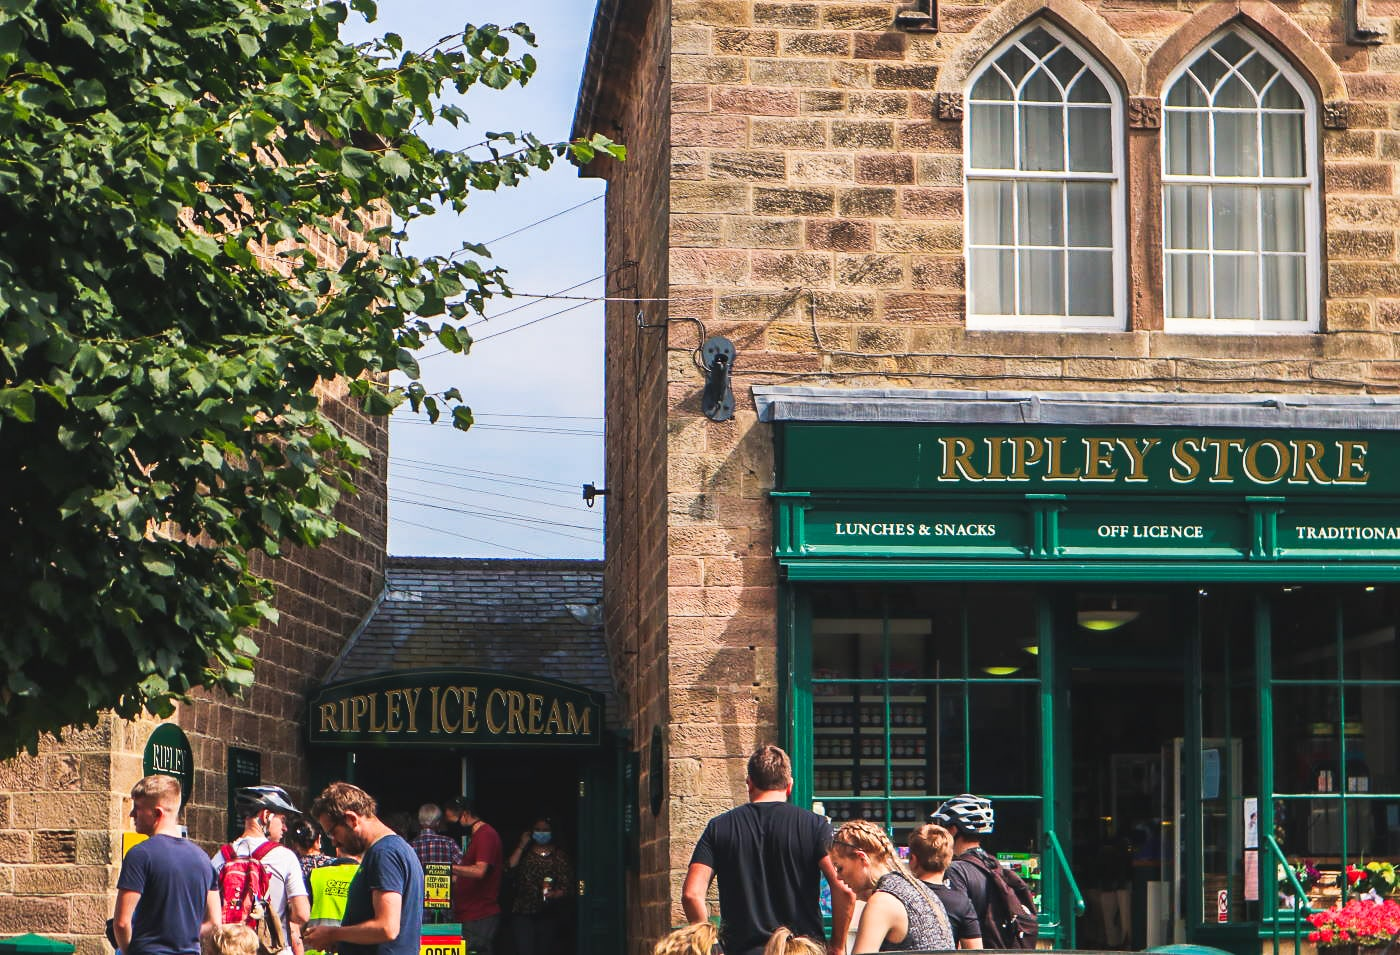 Quaint shops in Ripley, North Yorkshire, including Ripley Ice Cream